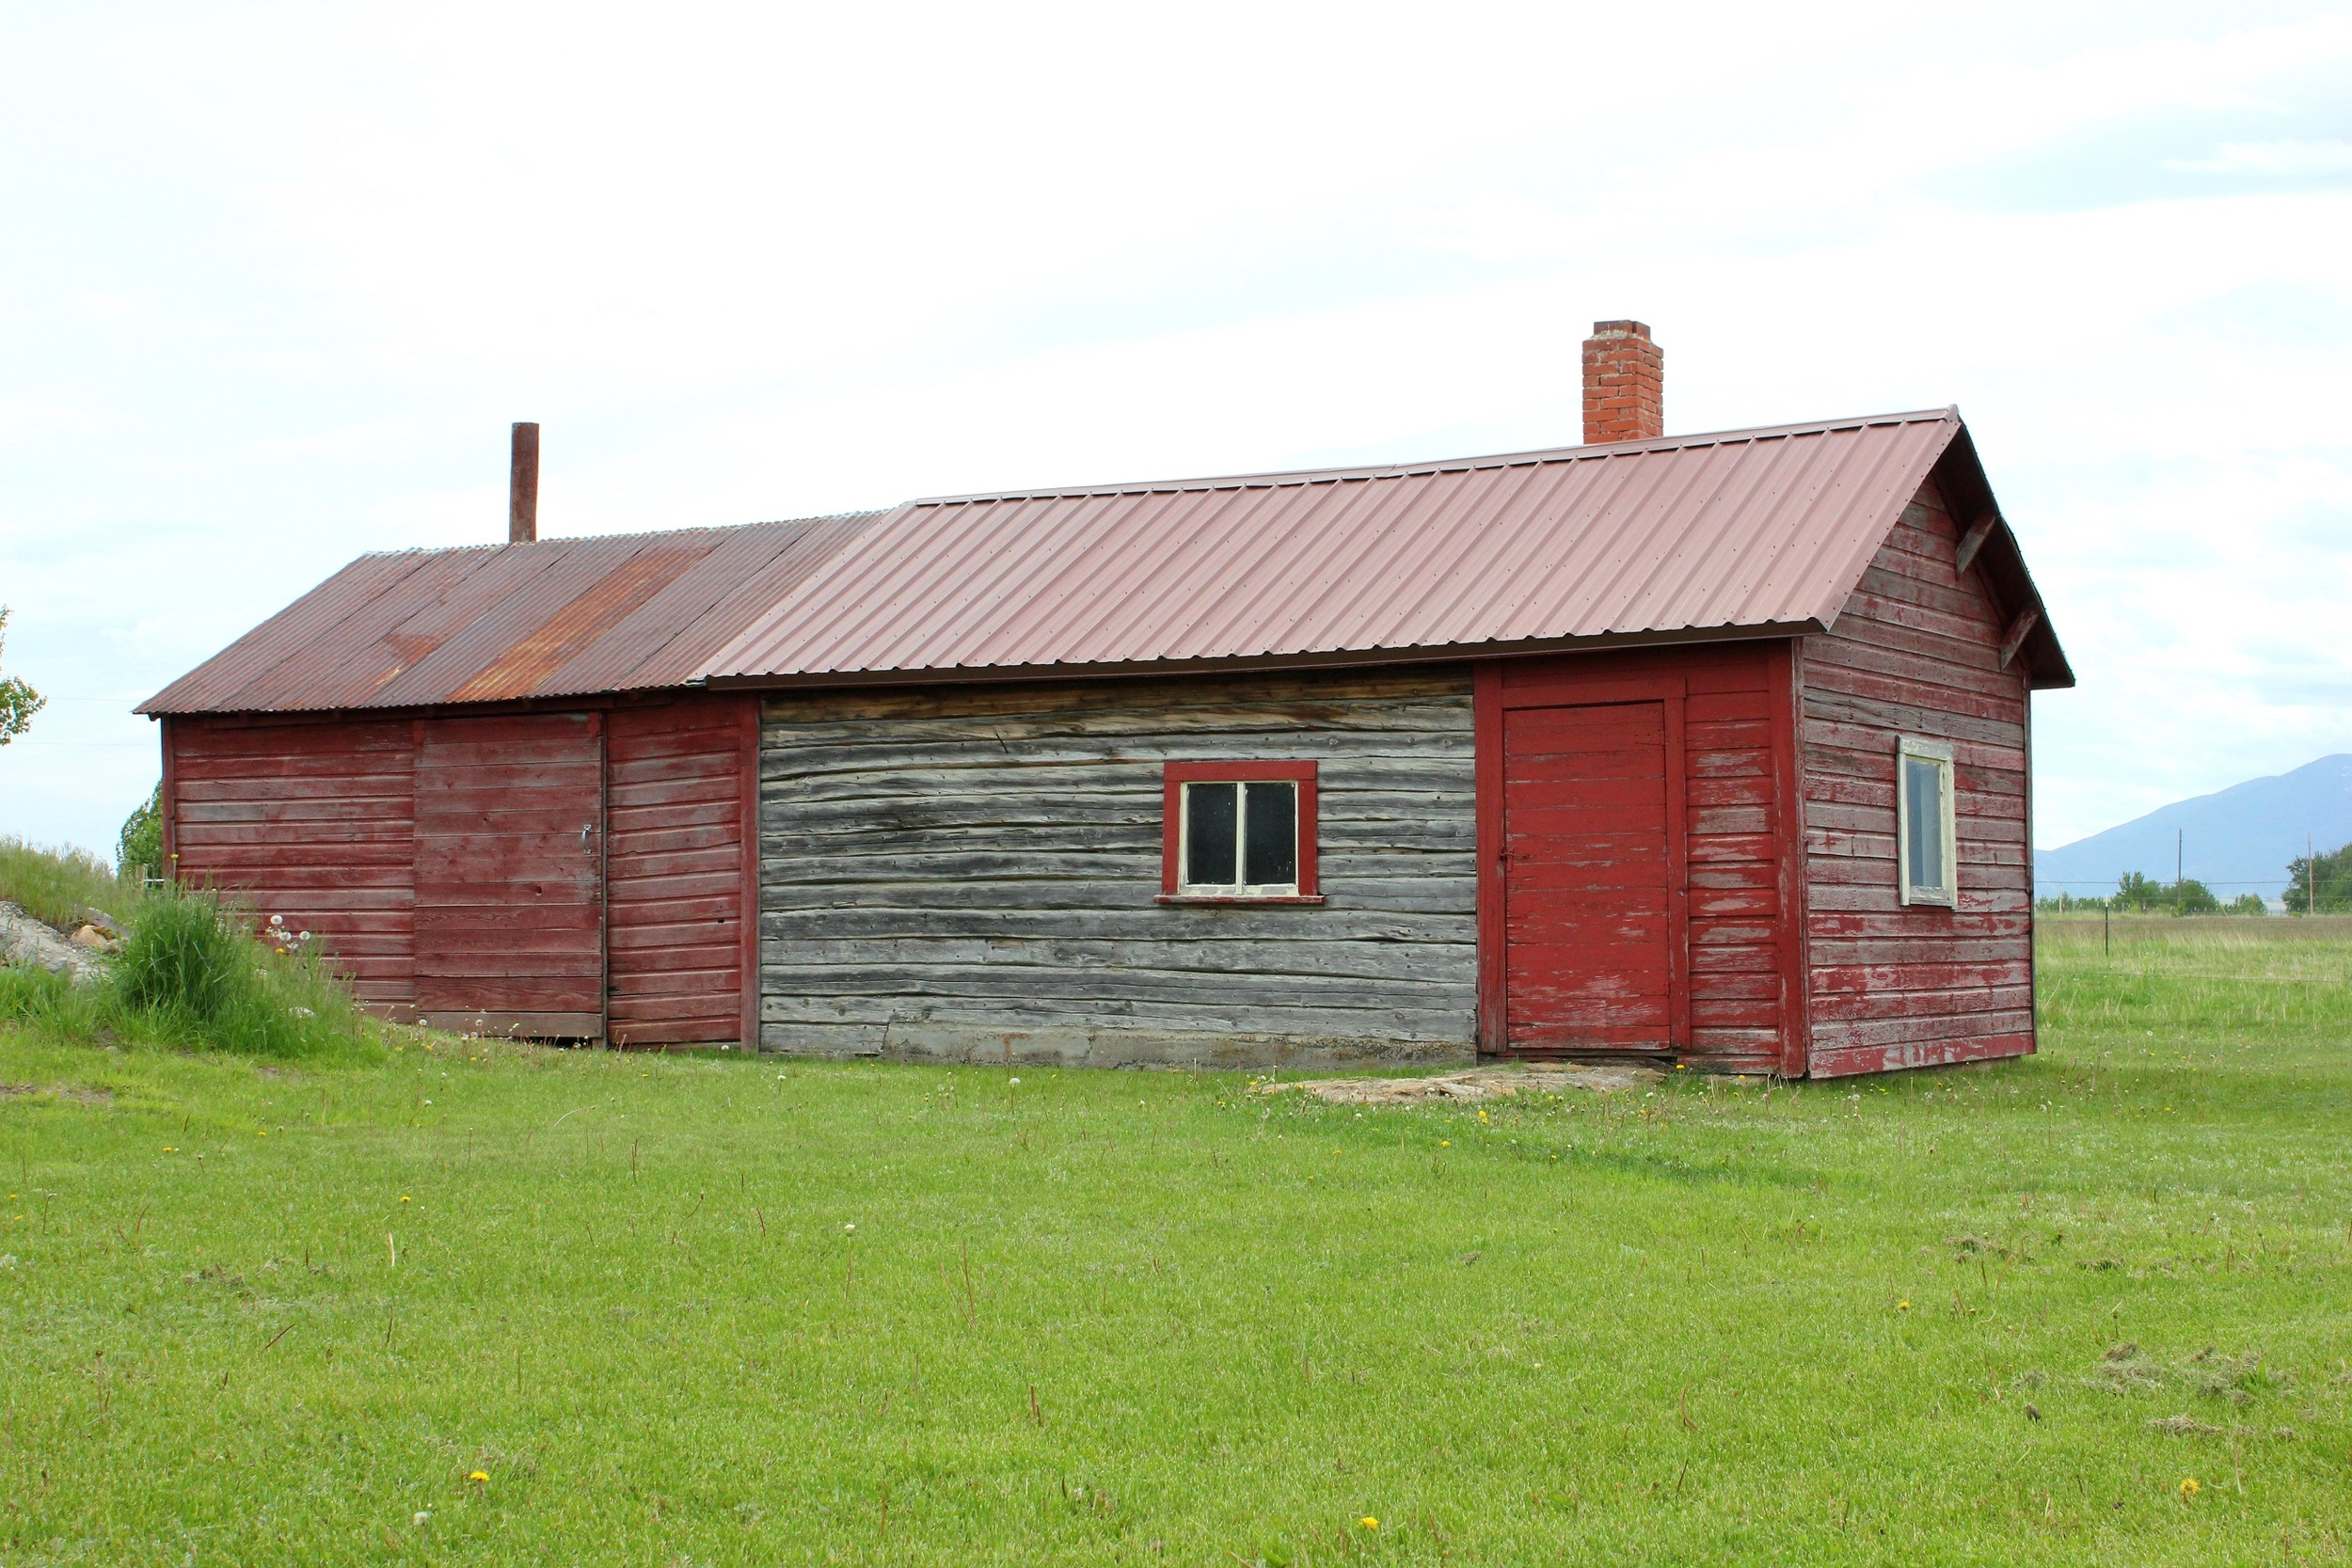 The Kero sauna is a classic and well preserved example of this building type, often found on Finnish homesteads.